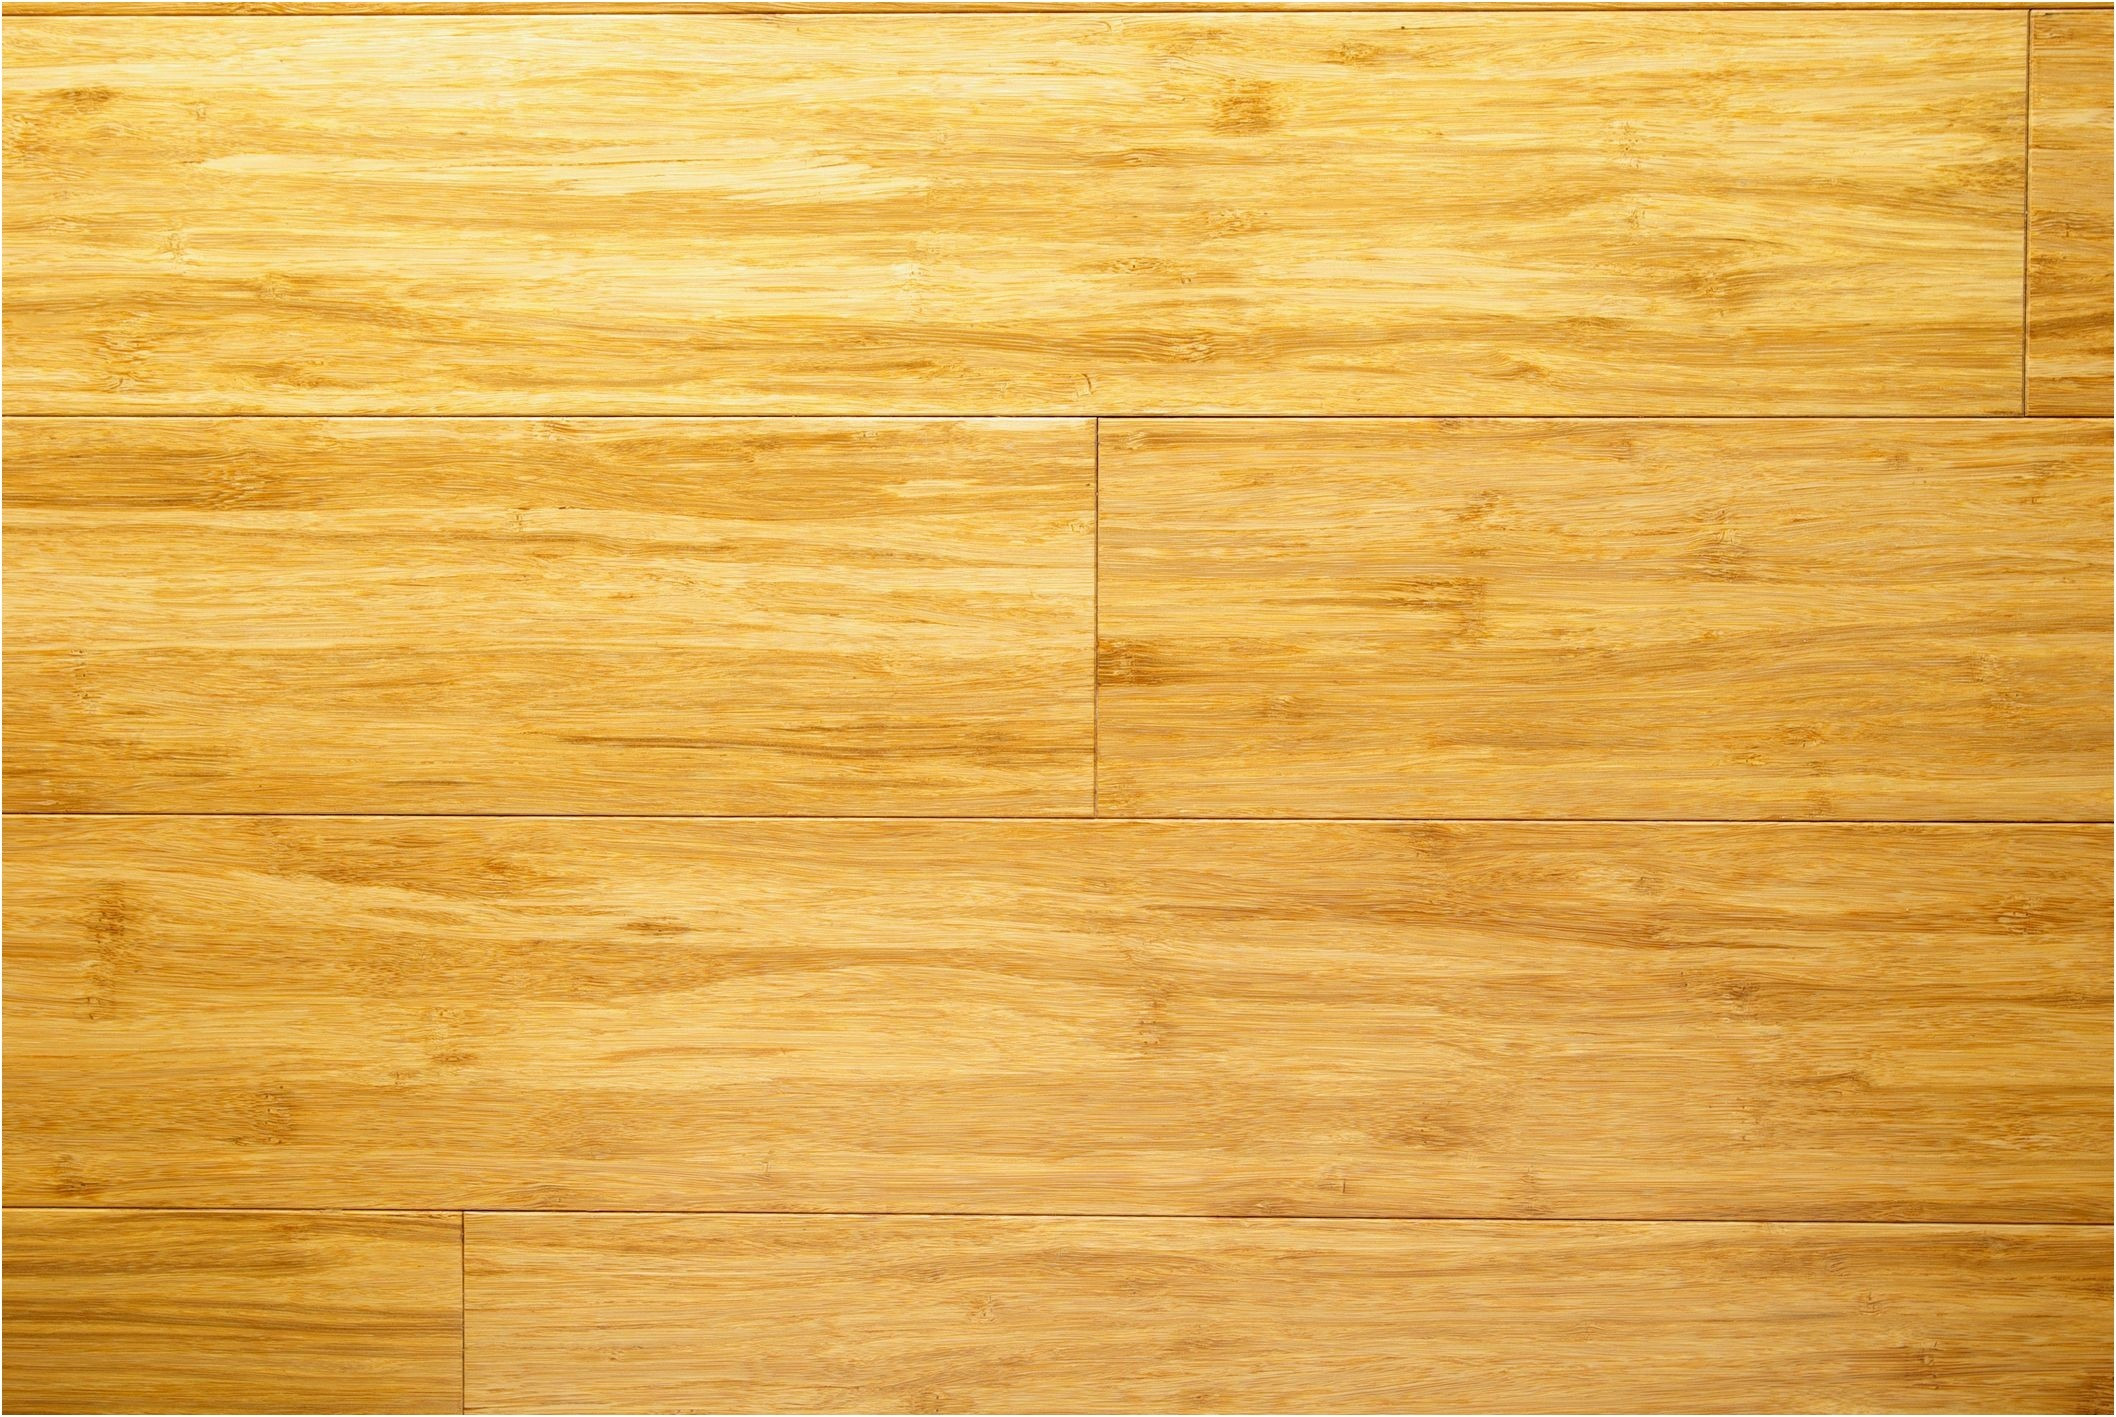 high quality laminate flooring vs hardwood of laminate vs bamboo new shaw industries natural impact ii laminate inside laminate vs bamboo new how do you lay laminate flooring elegant 0d grace place barnegat nj